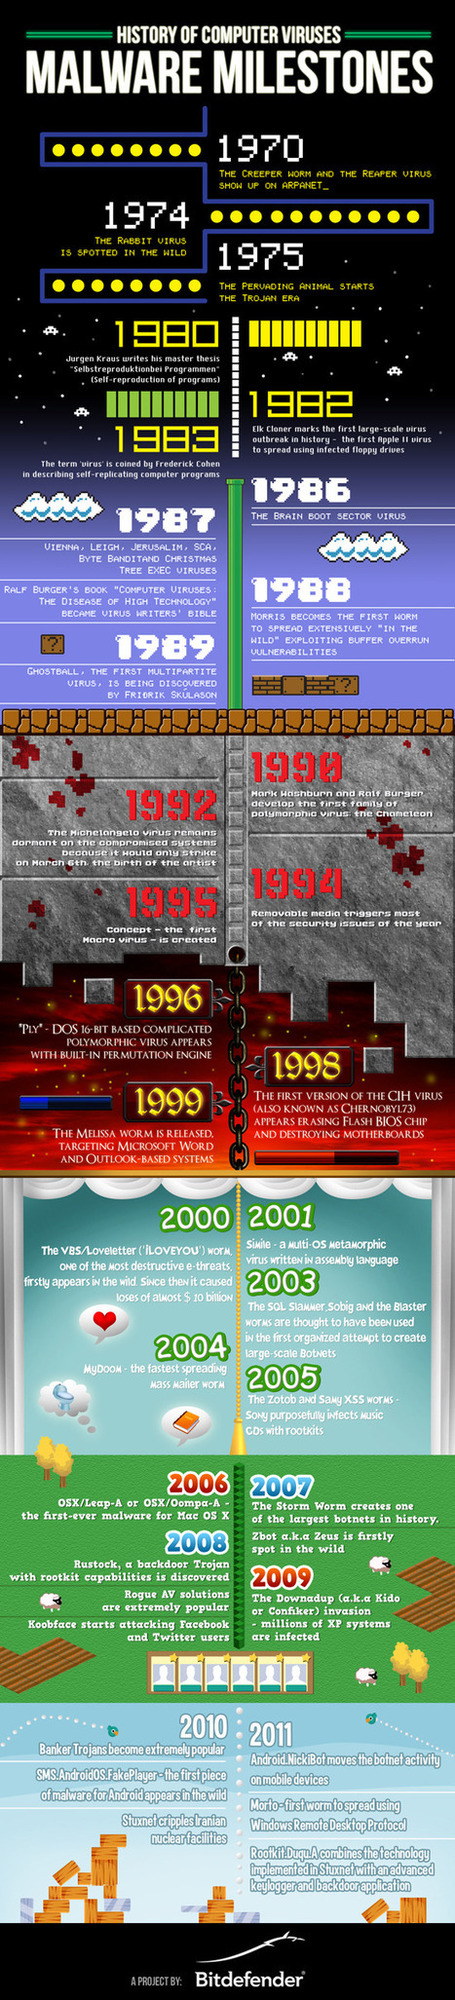 History of Computer Viruses | Infographic | ICT tips & tools, tracks & trails and... questioning them all ! | Scoop.it